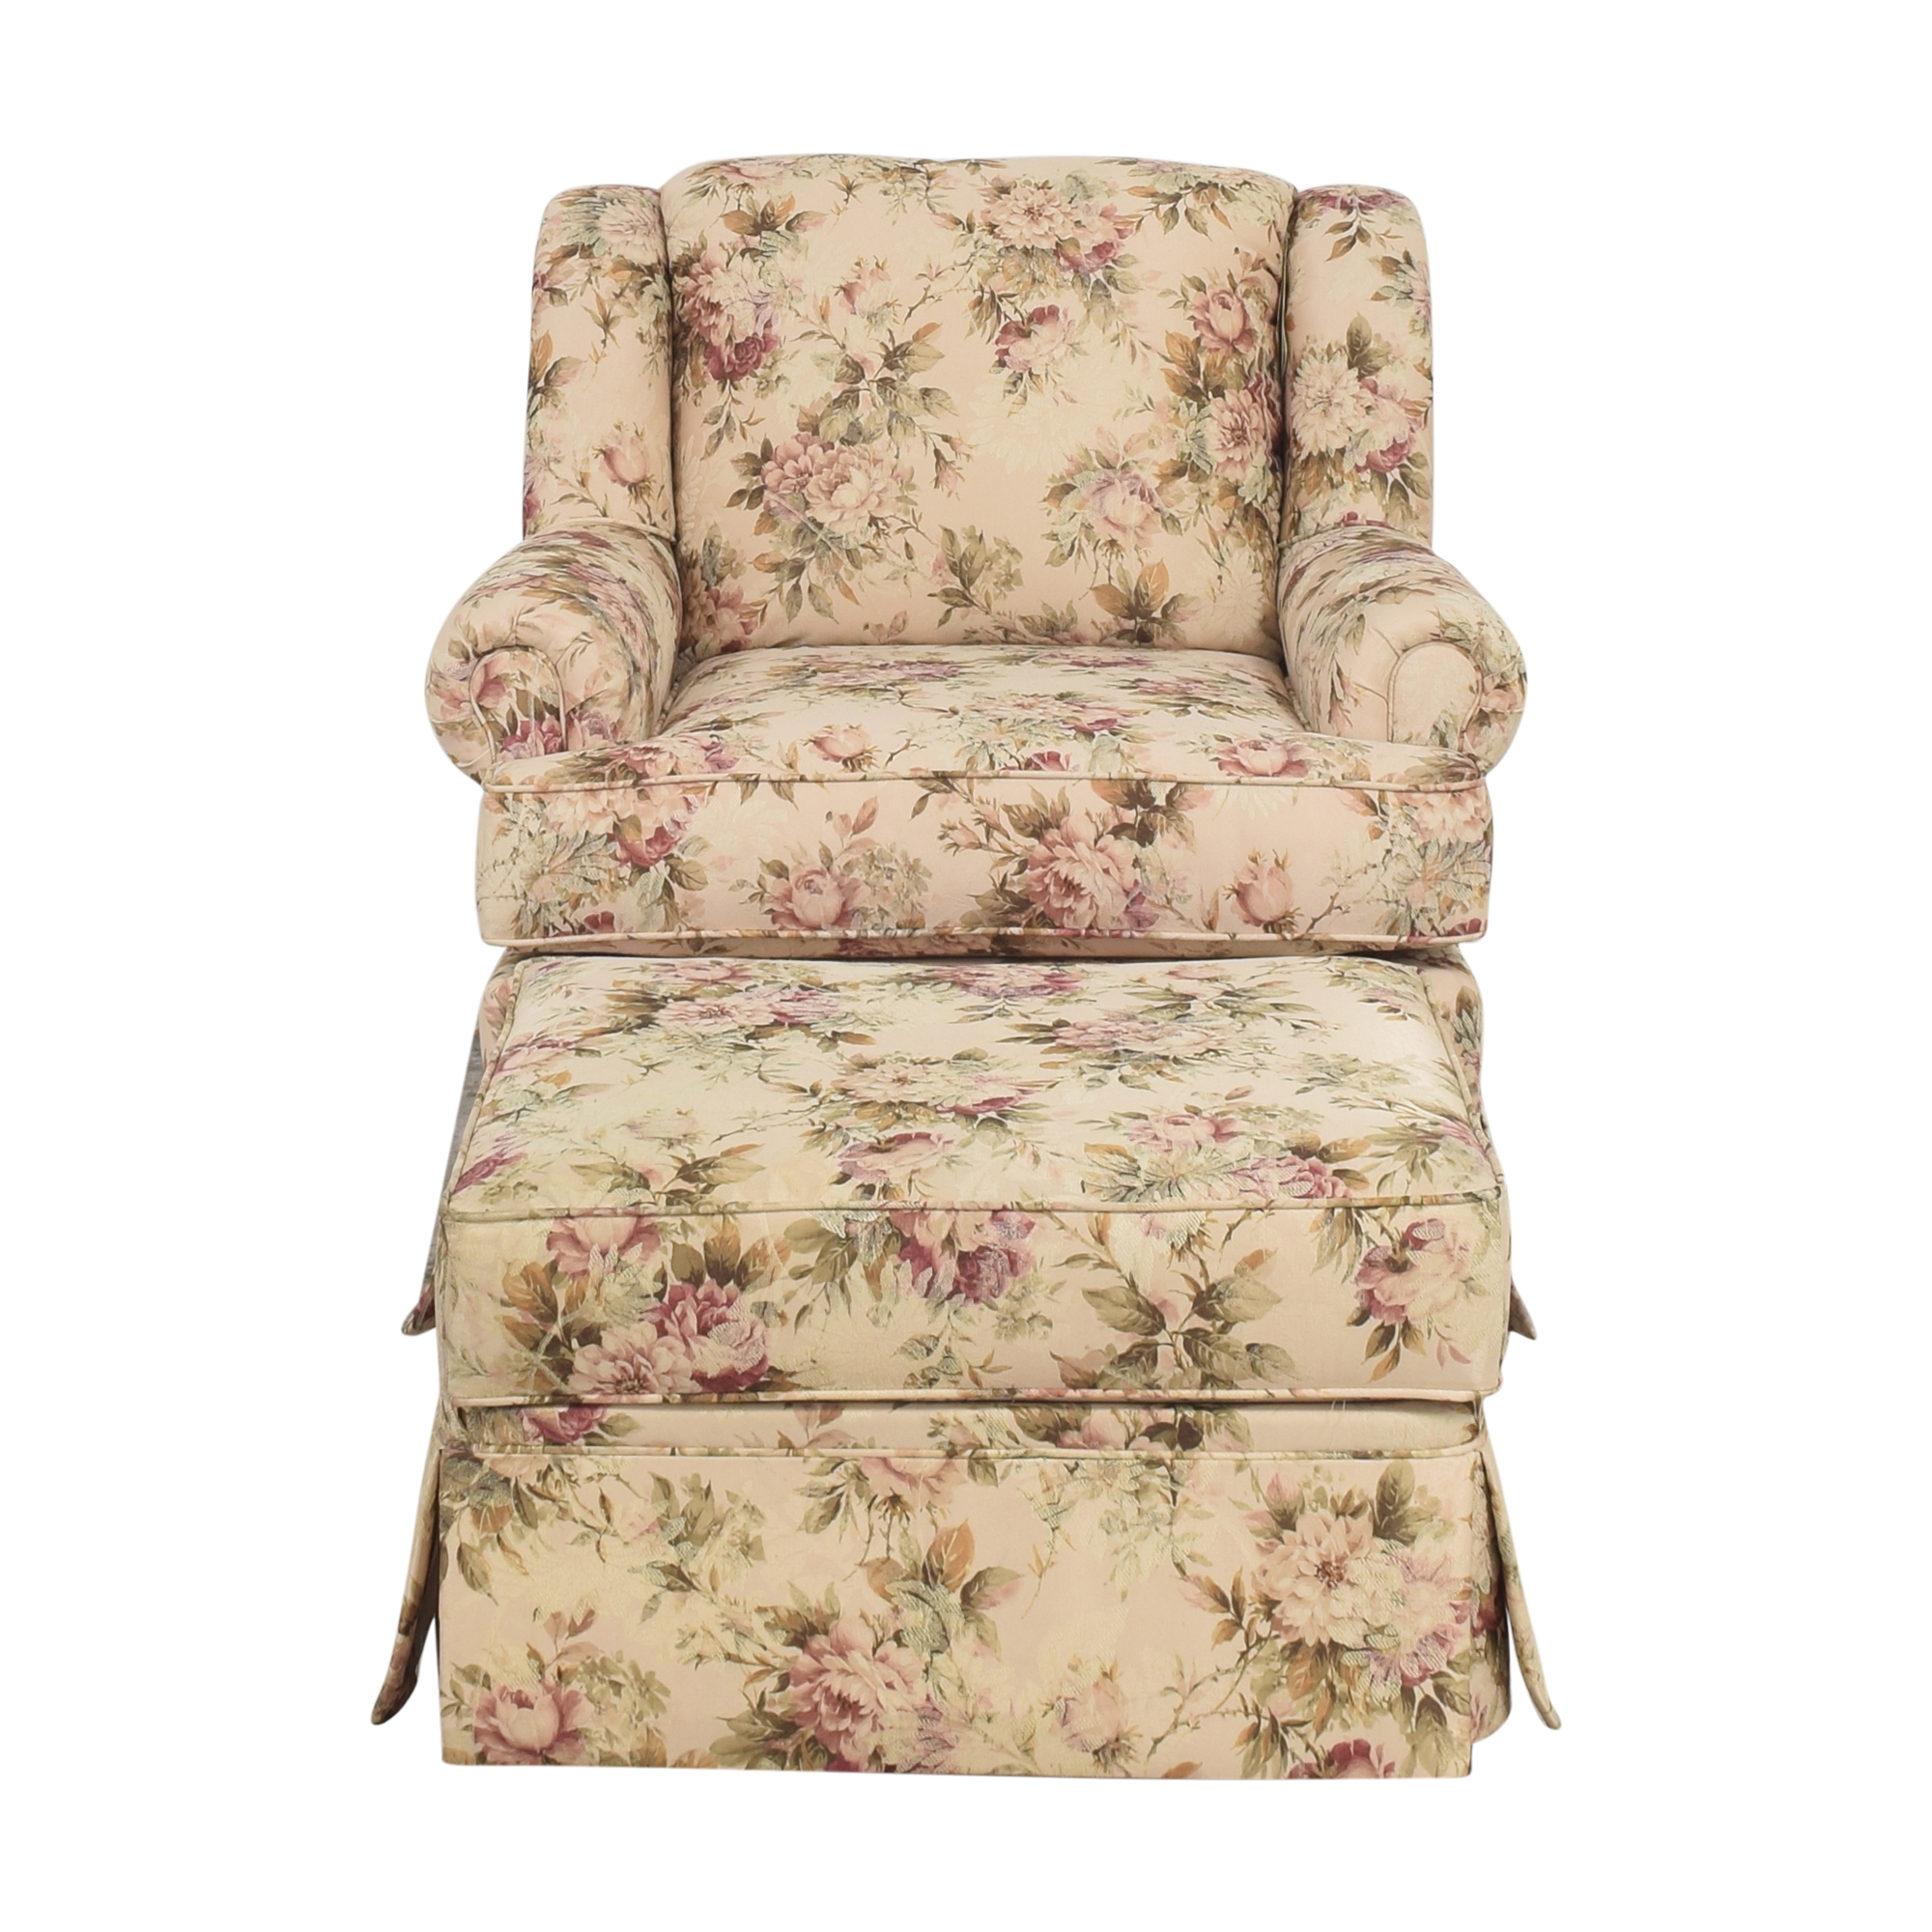 England Furniture Floral Accent Chair with Ottoman England Furniture